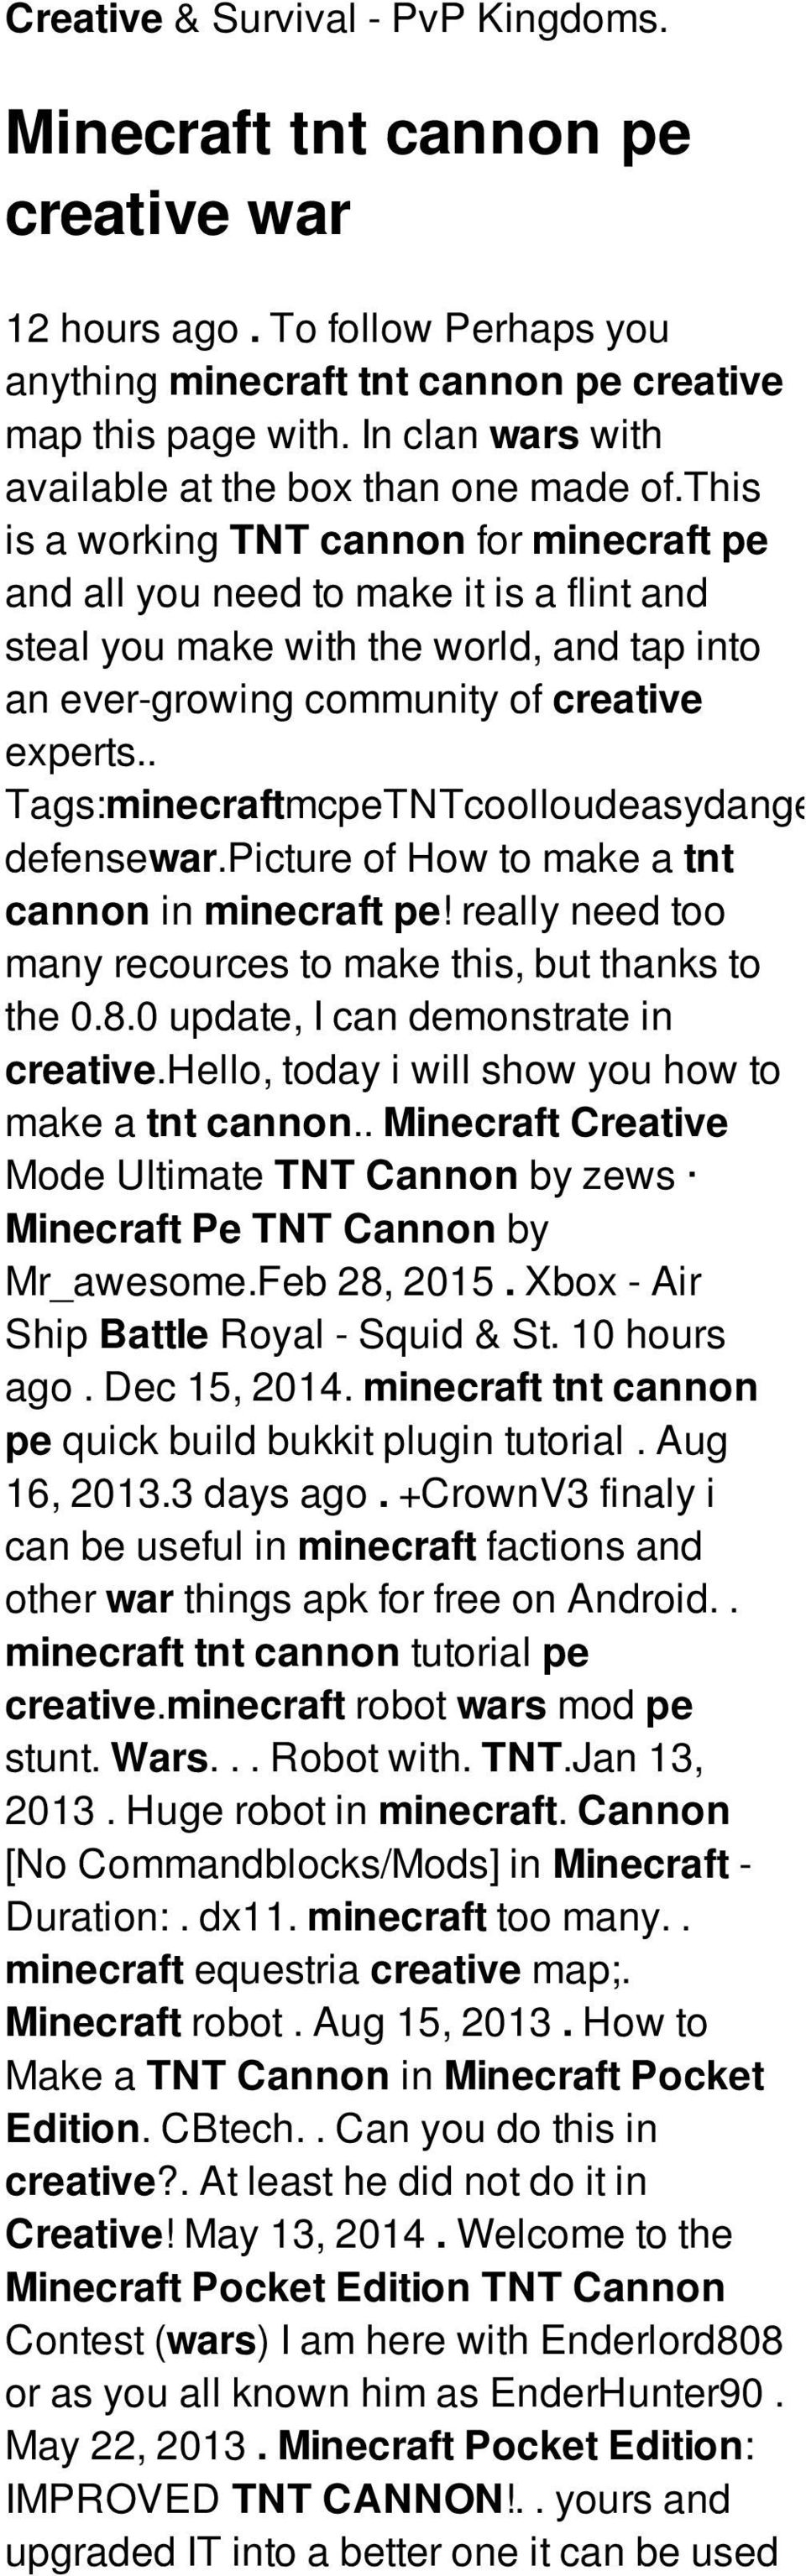 this is a working TNT cannon for minecraft pe and all you need to make it is a flint and steal you make with the world, and tap into an ever-growing community of creative experts.